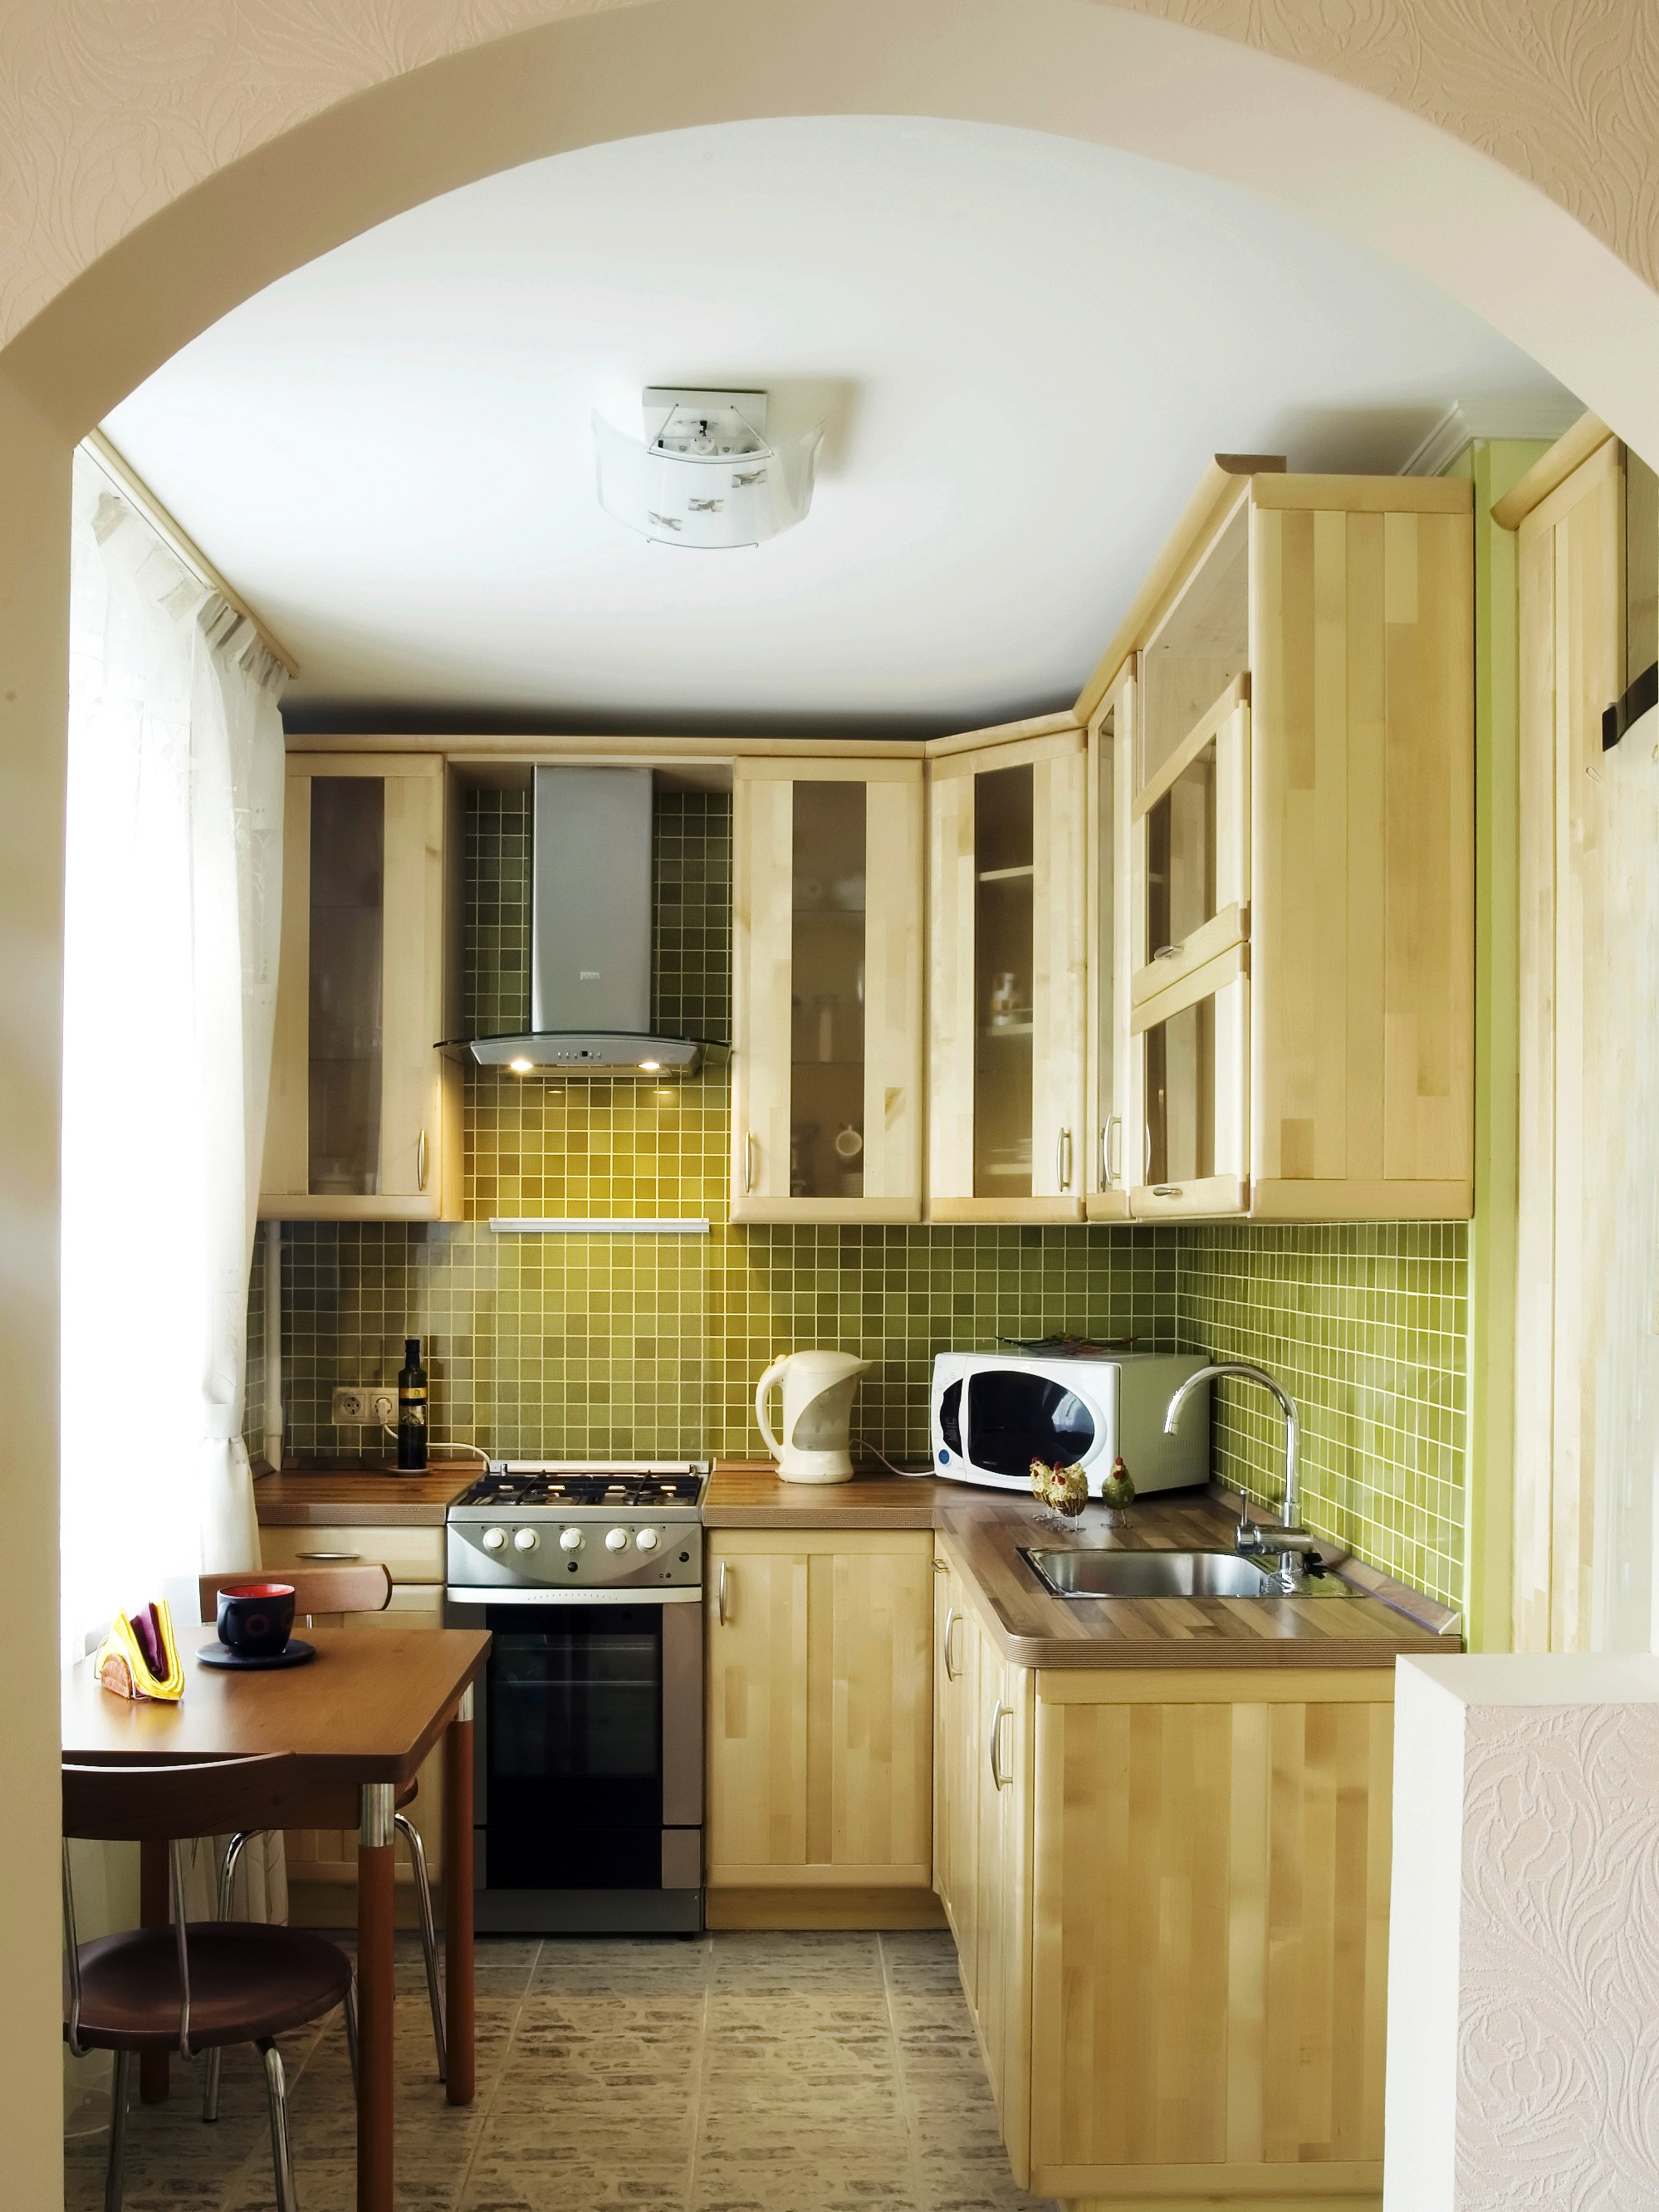 Beauty Modern Small Kitchen With Wooden Cabinets (Image 1 of 24)